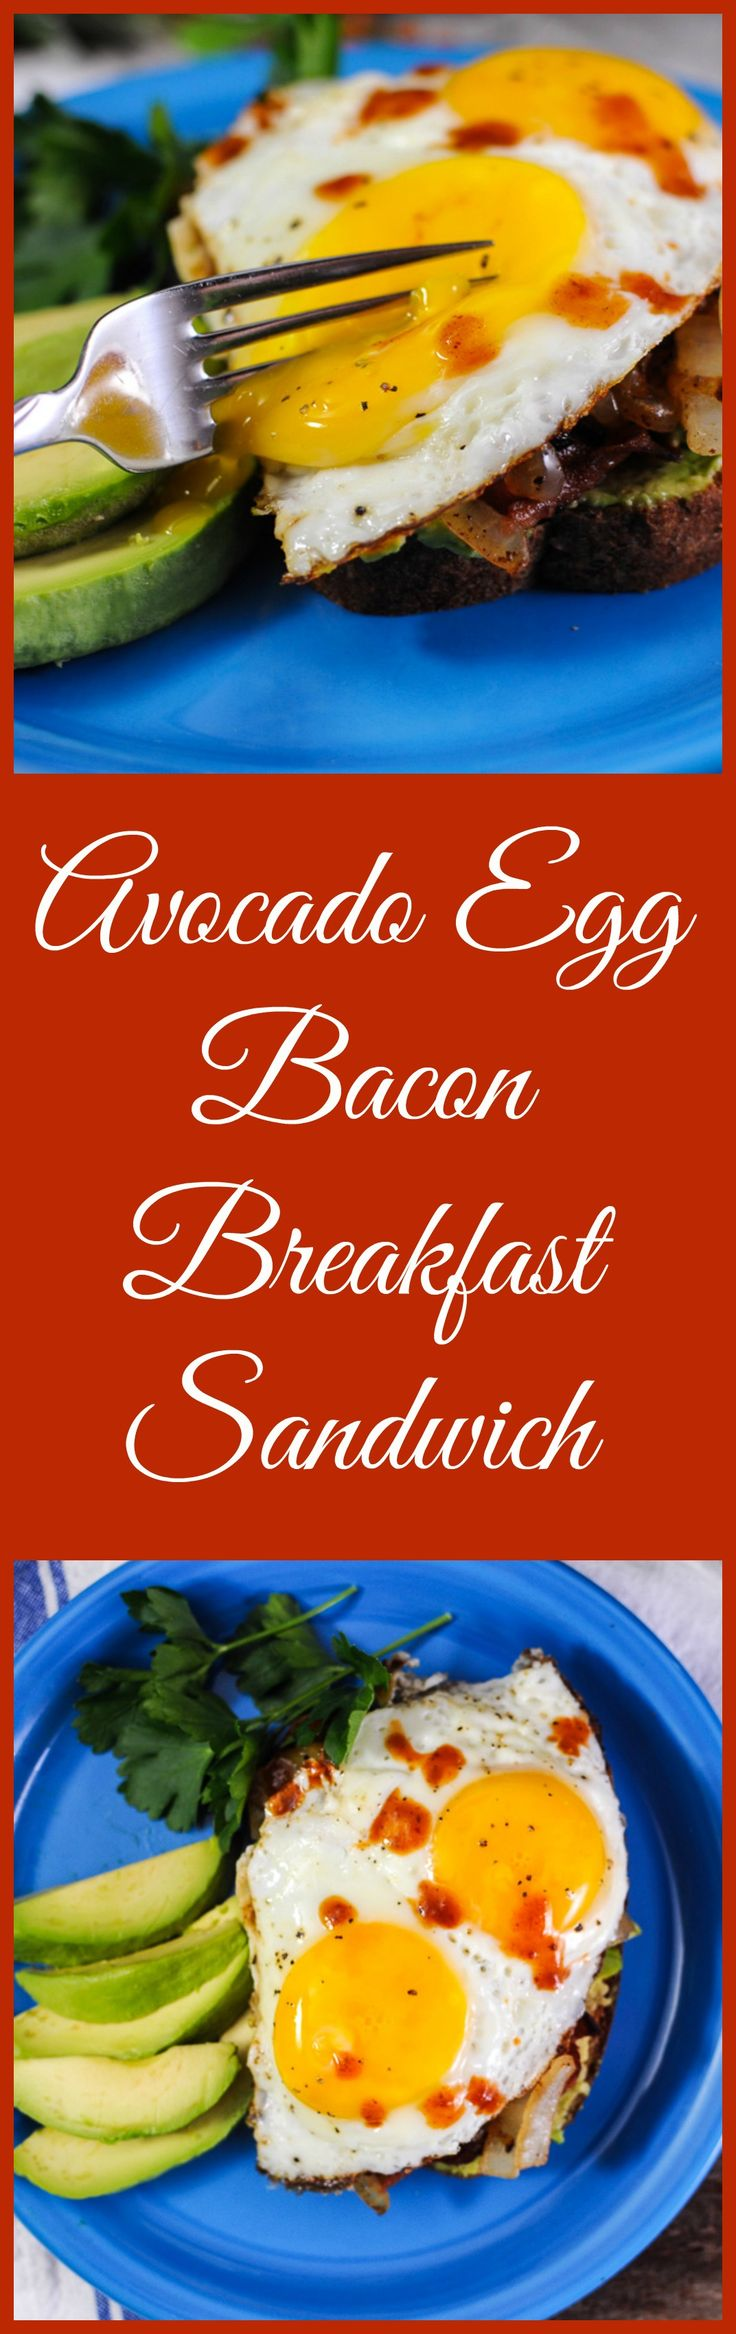 Need a great breakfast sandwich? Here's an avocado, egg, bacon, onion and hot sauce toast for you!